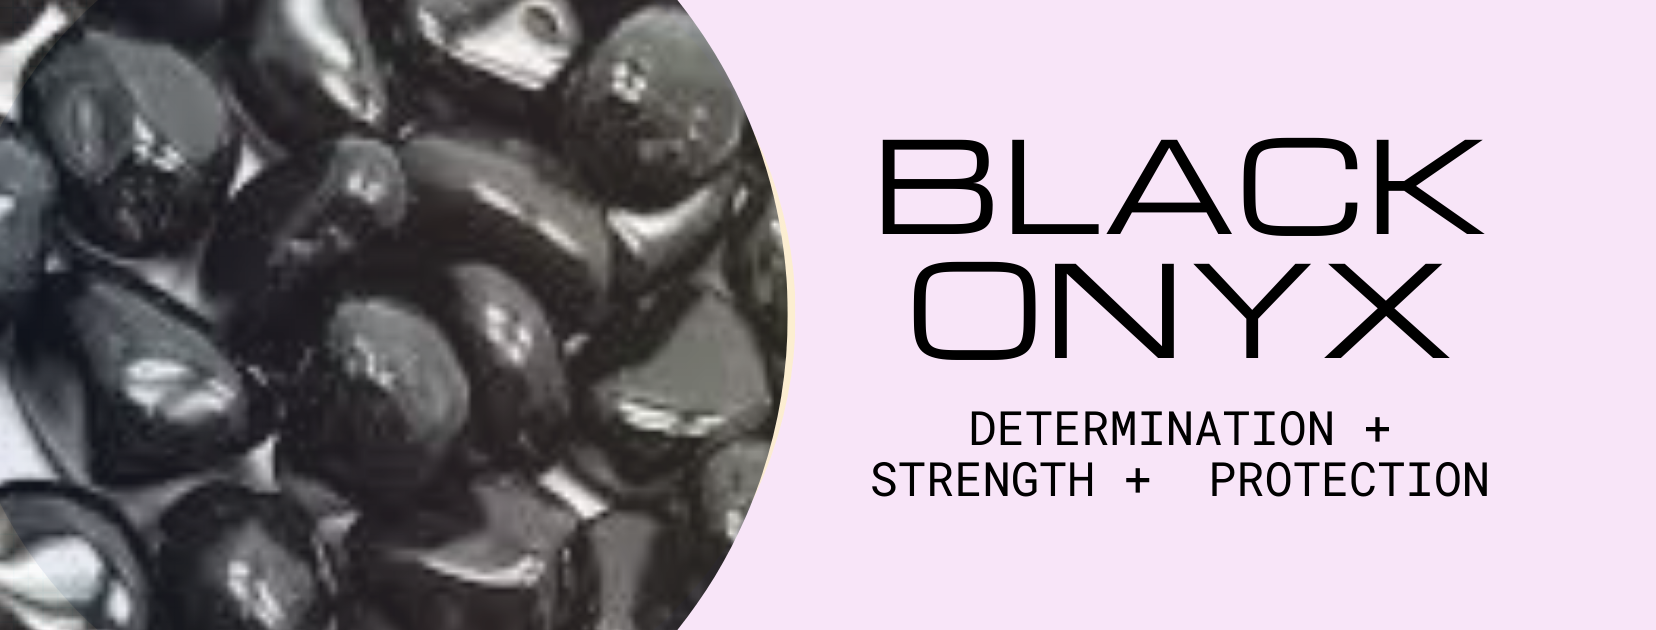 Black Onyx Healing Properties | Black Onyx Meaning | Benefits Of Black Onyx - Magic Crystals Store .PNG